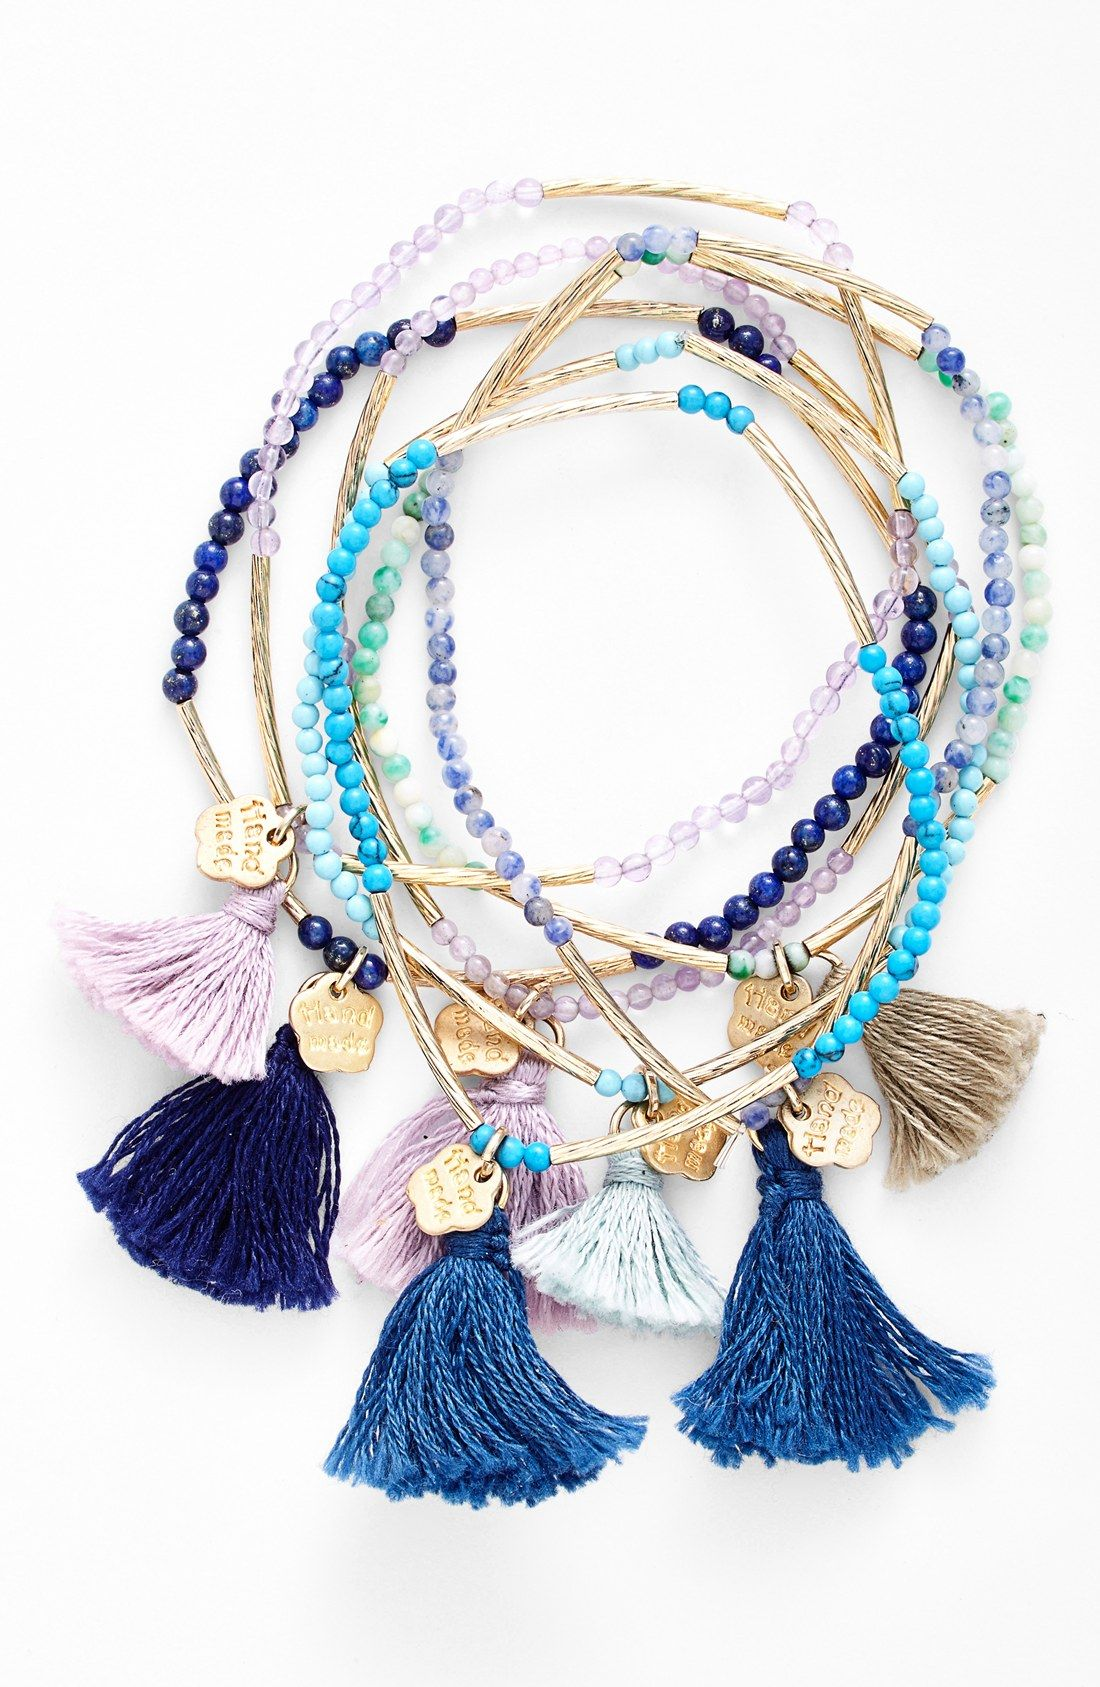 colorful beads and metallic bars are strung around this